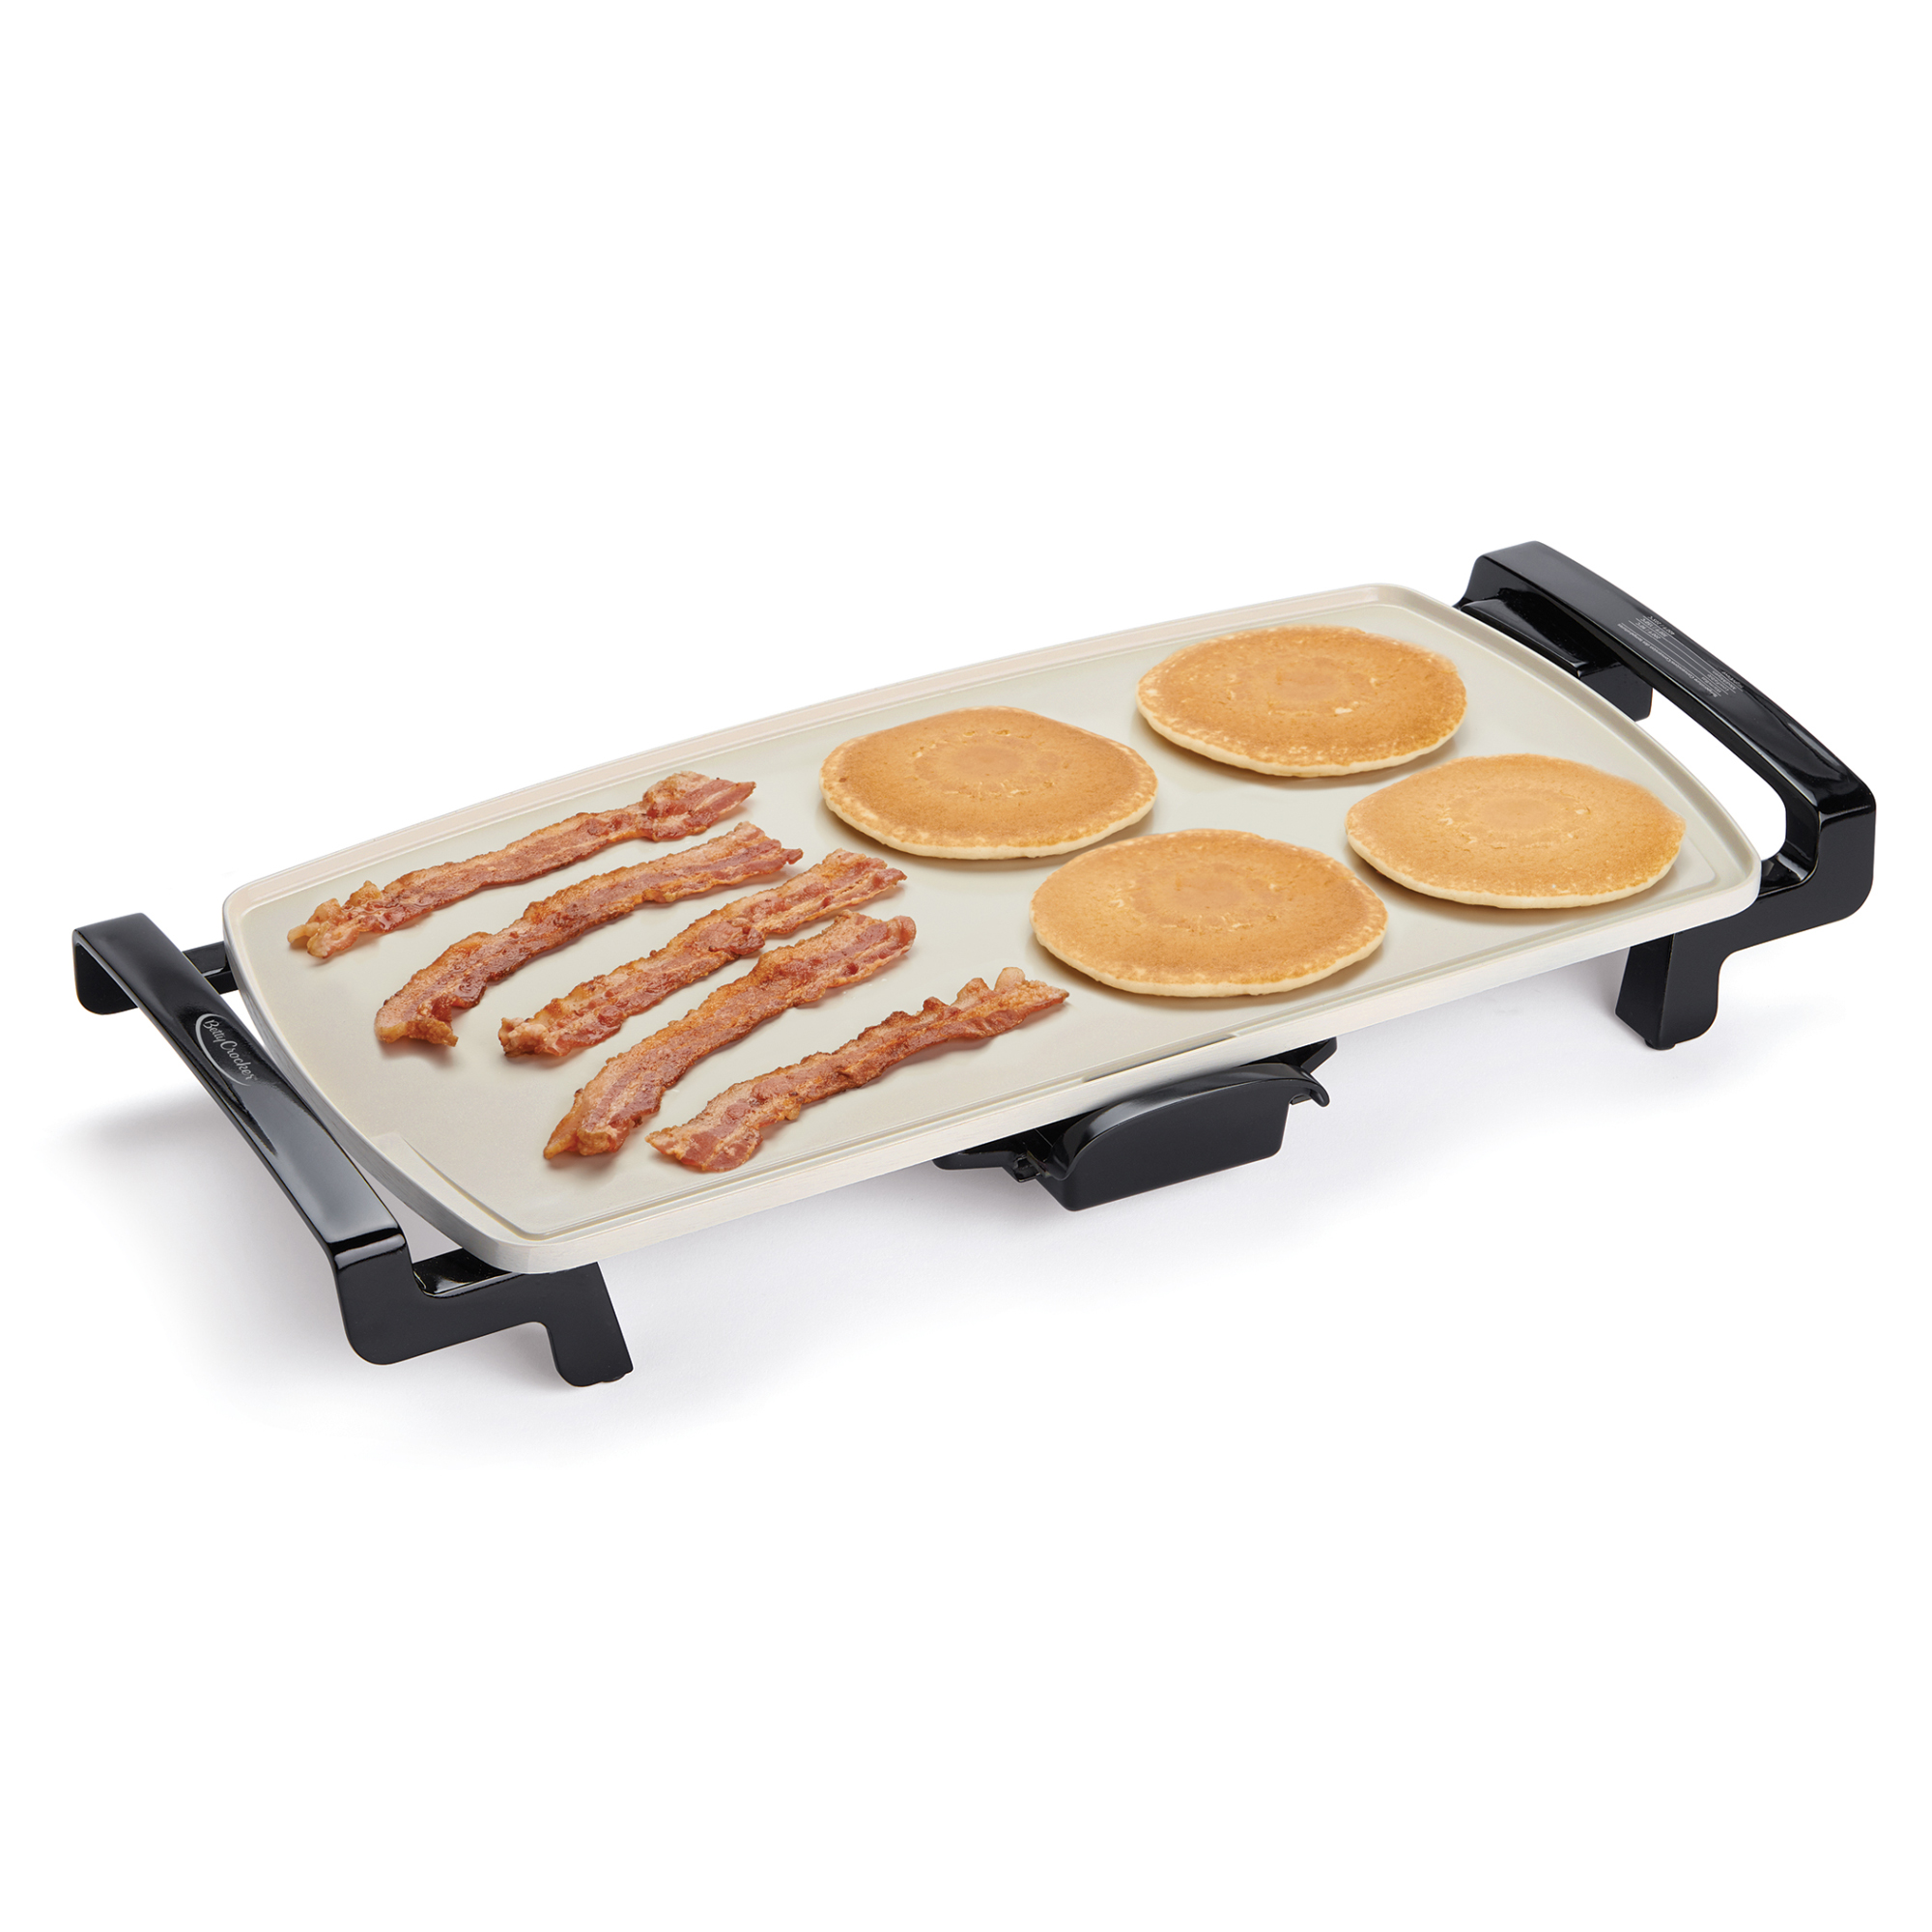 Betty Crocker 20 x 10.5 Inch Ceramic Coated Griddle